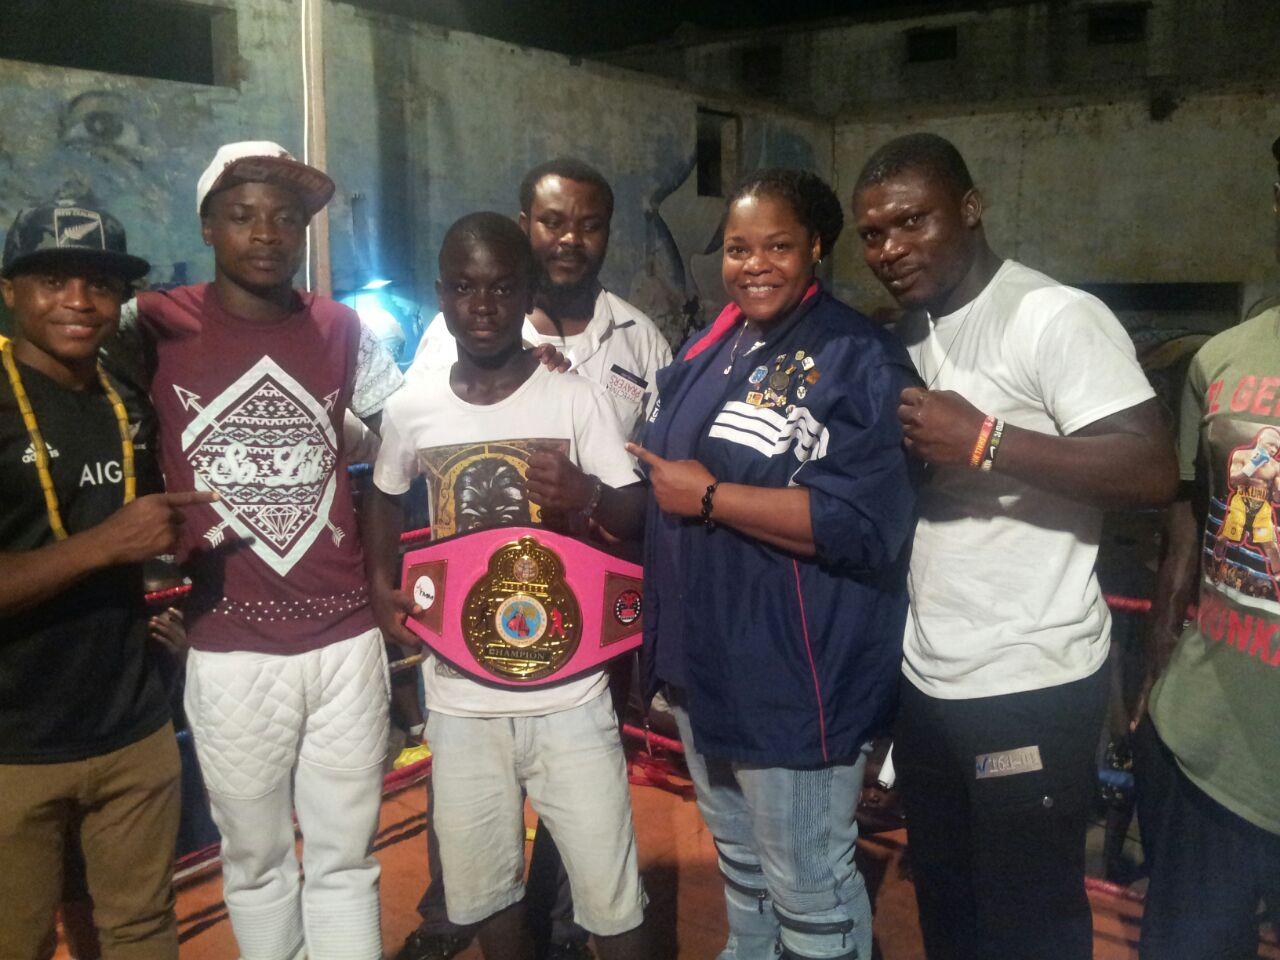 - Former boxer, Emmanuel Adotei Addo's Night of the Best' amateur boxing show and talent hunt received a massive boost when the legend himself, Azumah Nelson showed up to lend first hand support at Bukom on Friday evening.